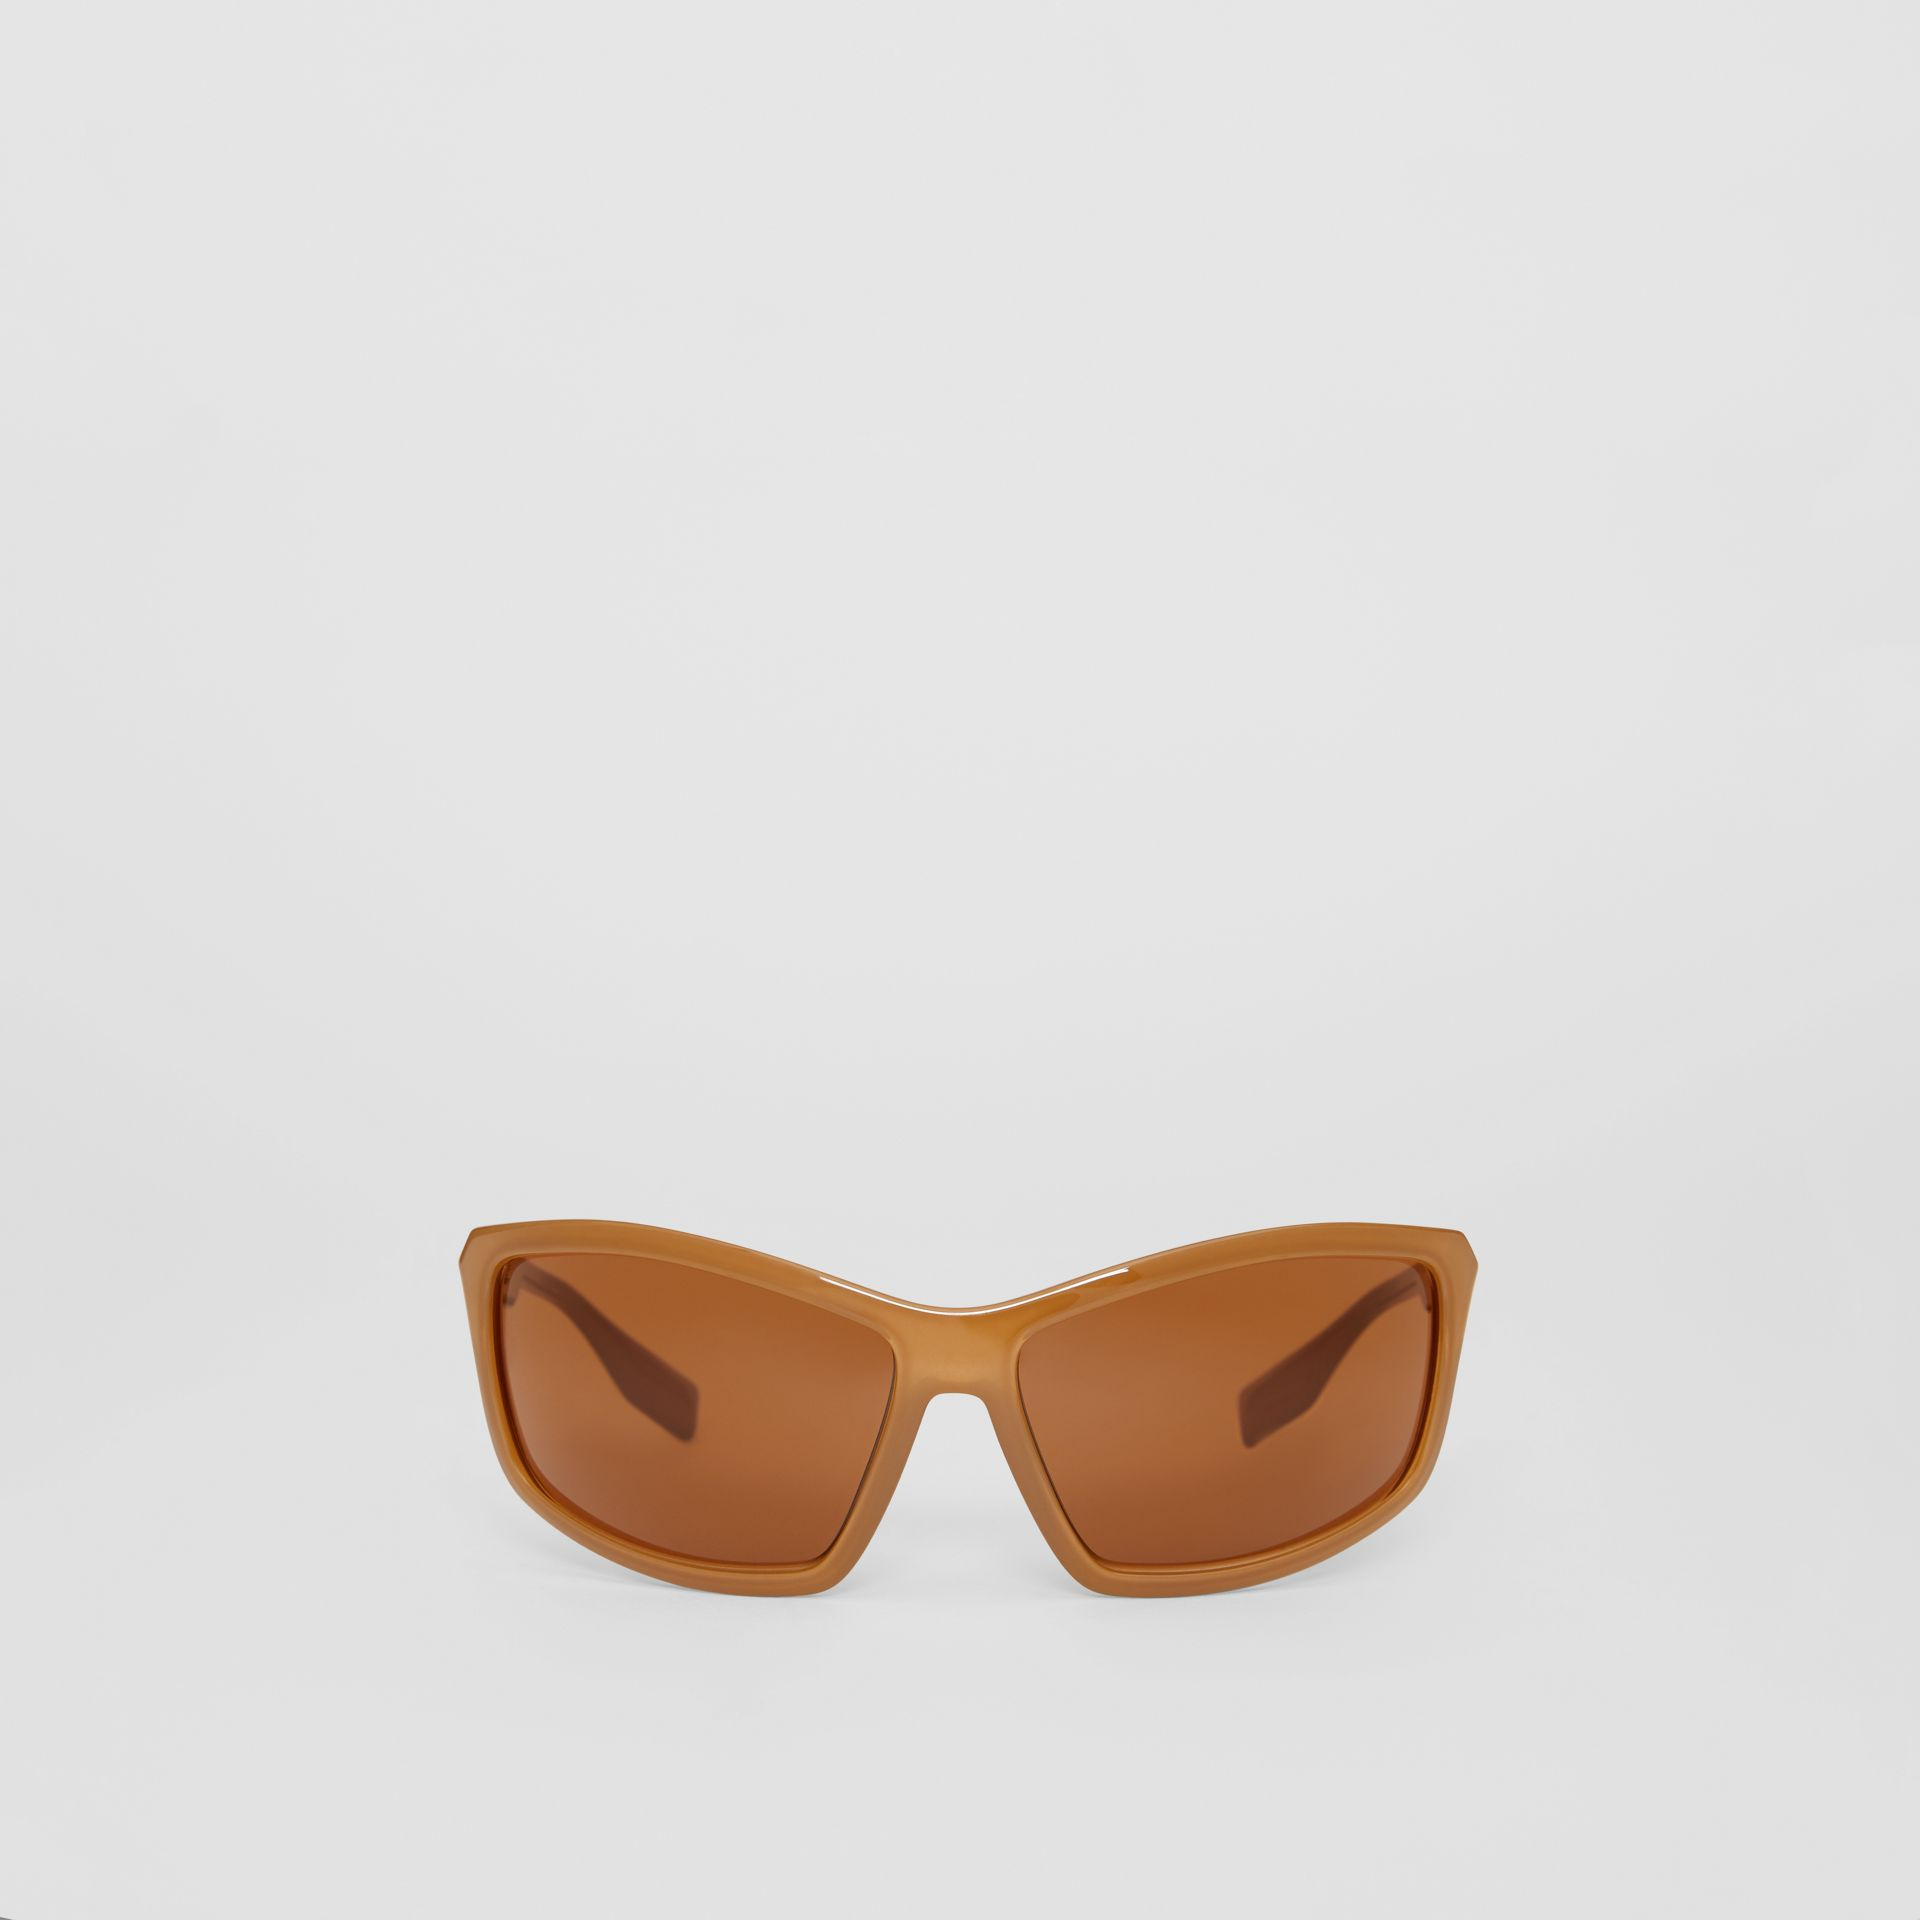 Wrap Frame Sunglasses in Amber Tortoiseshell - Men | Burberry Canada - gallery image 0